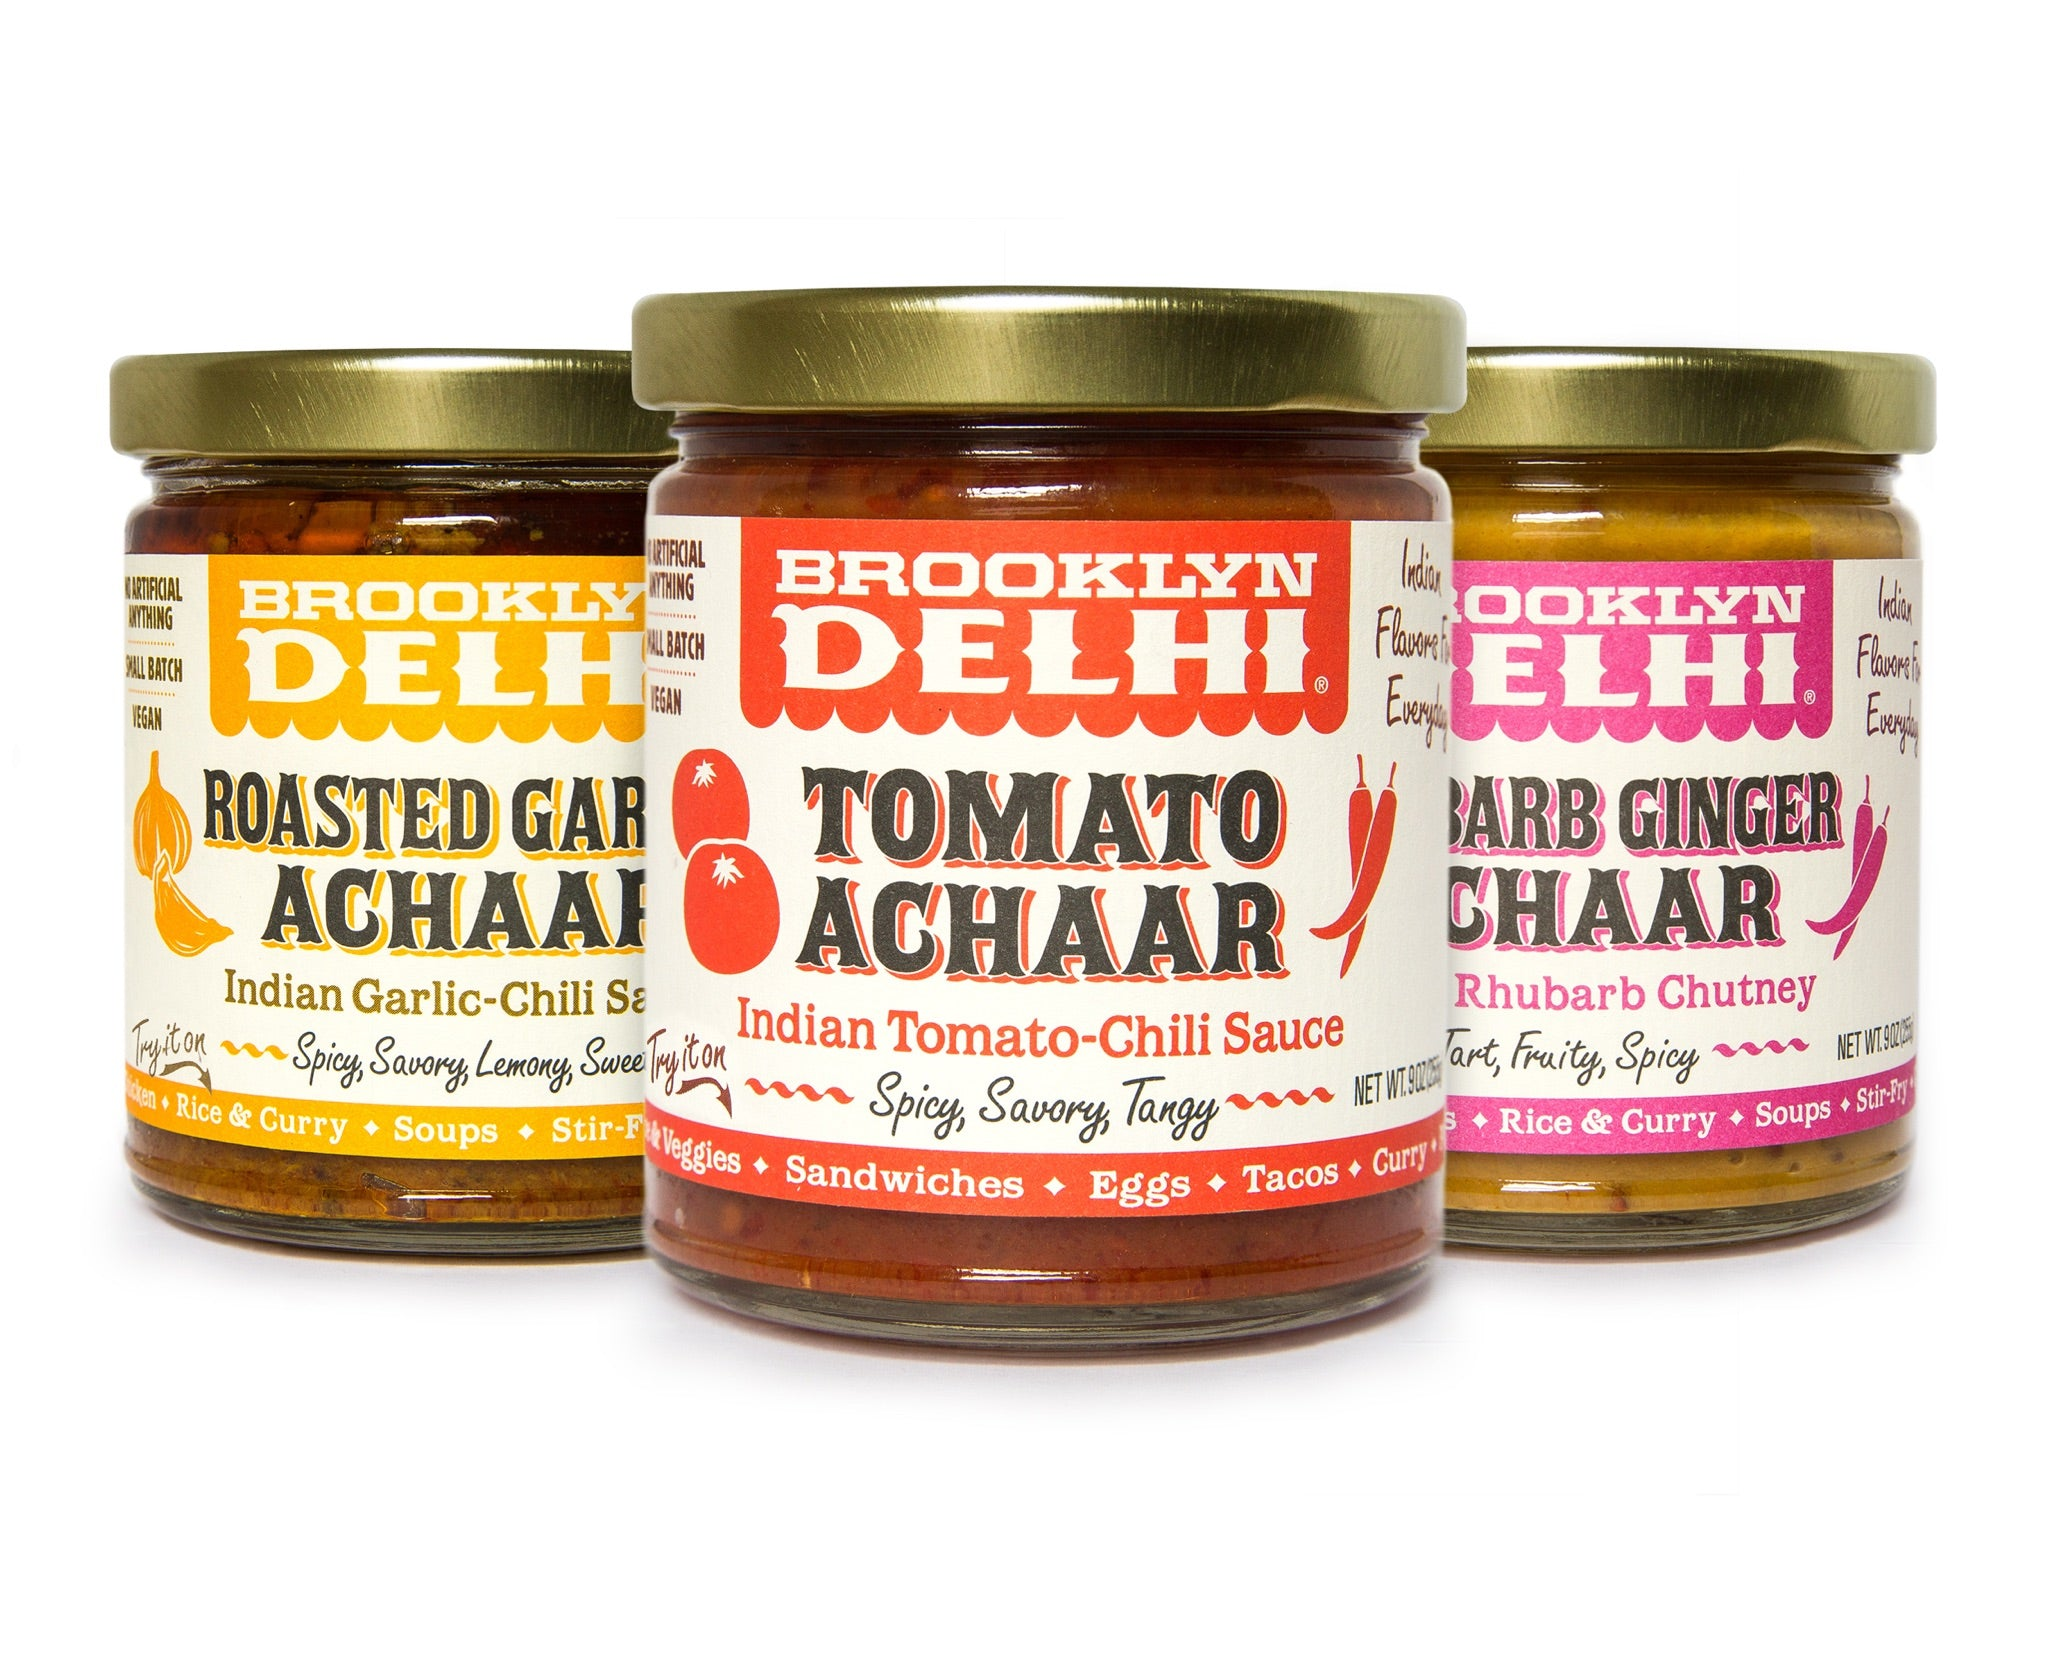 Brooklyn Delhi Achaar Sampler 3-Pack